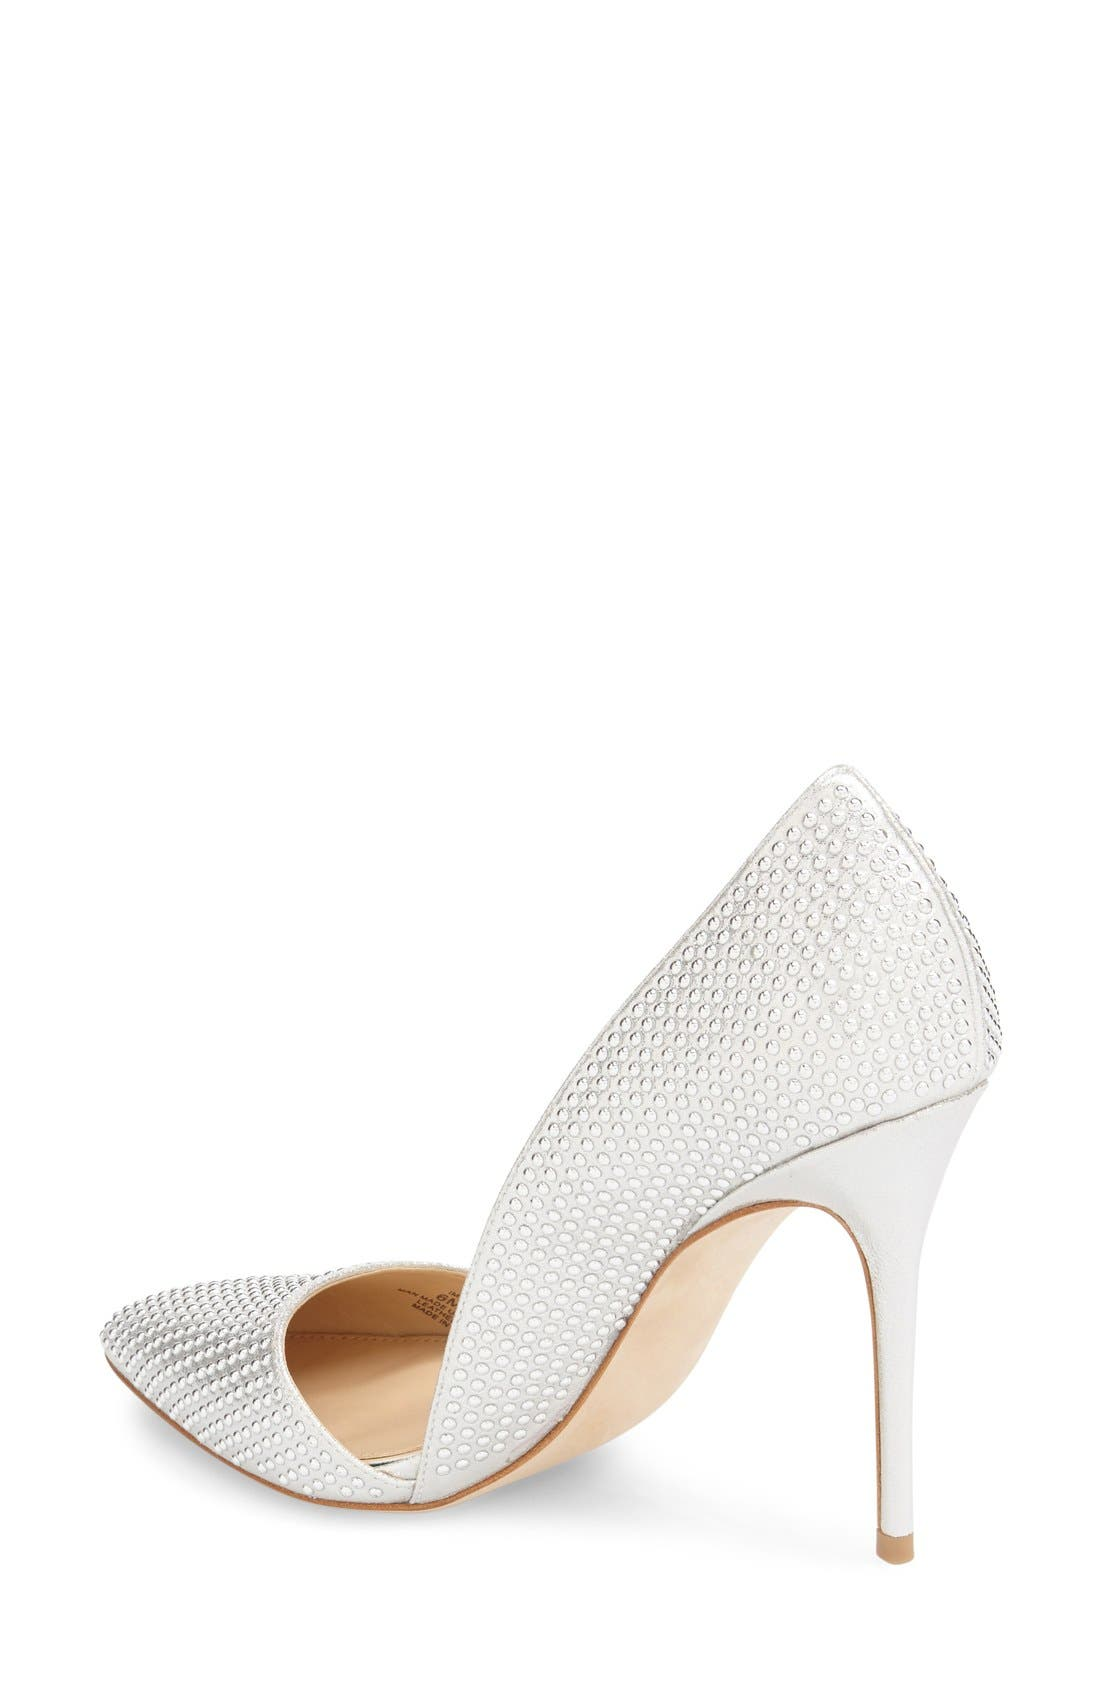 Imagine Vince Camuto 'Ossie' d'Orsay Pump,                             Alternate thumbnail 2, color,                             Platinum Shimmer